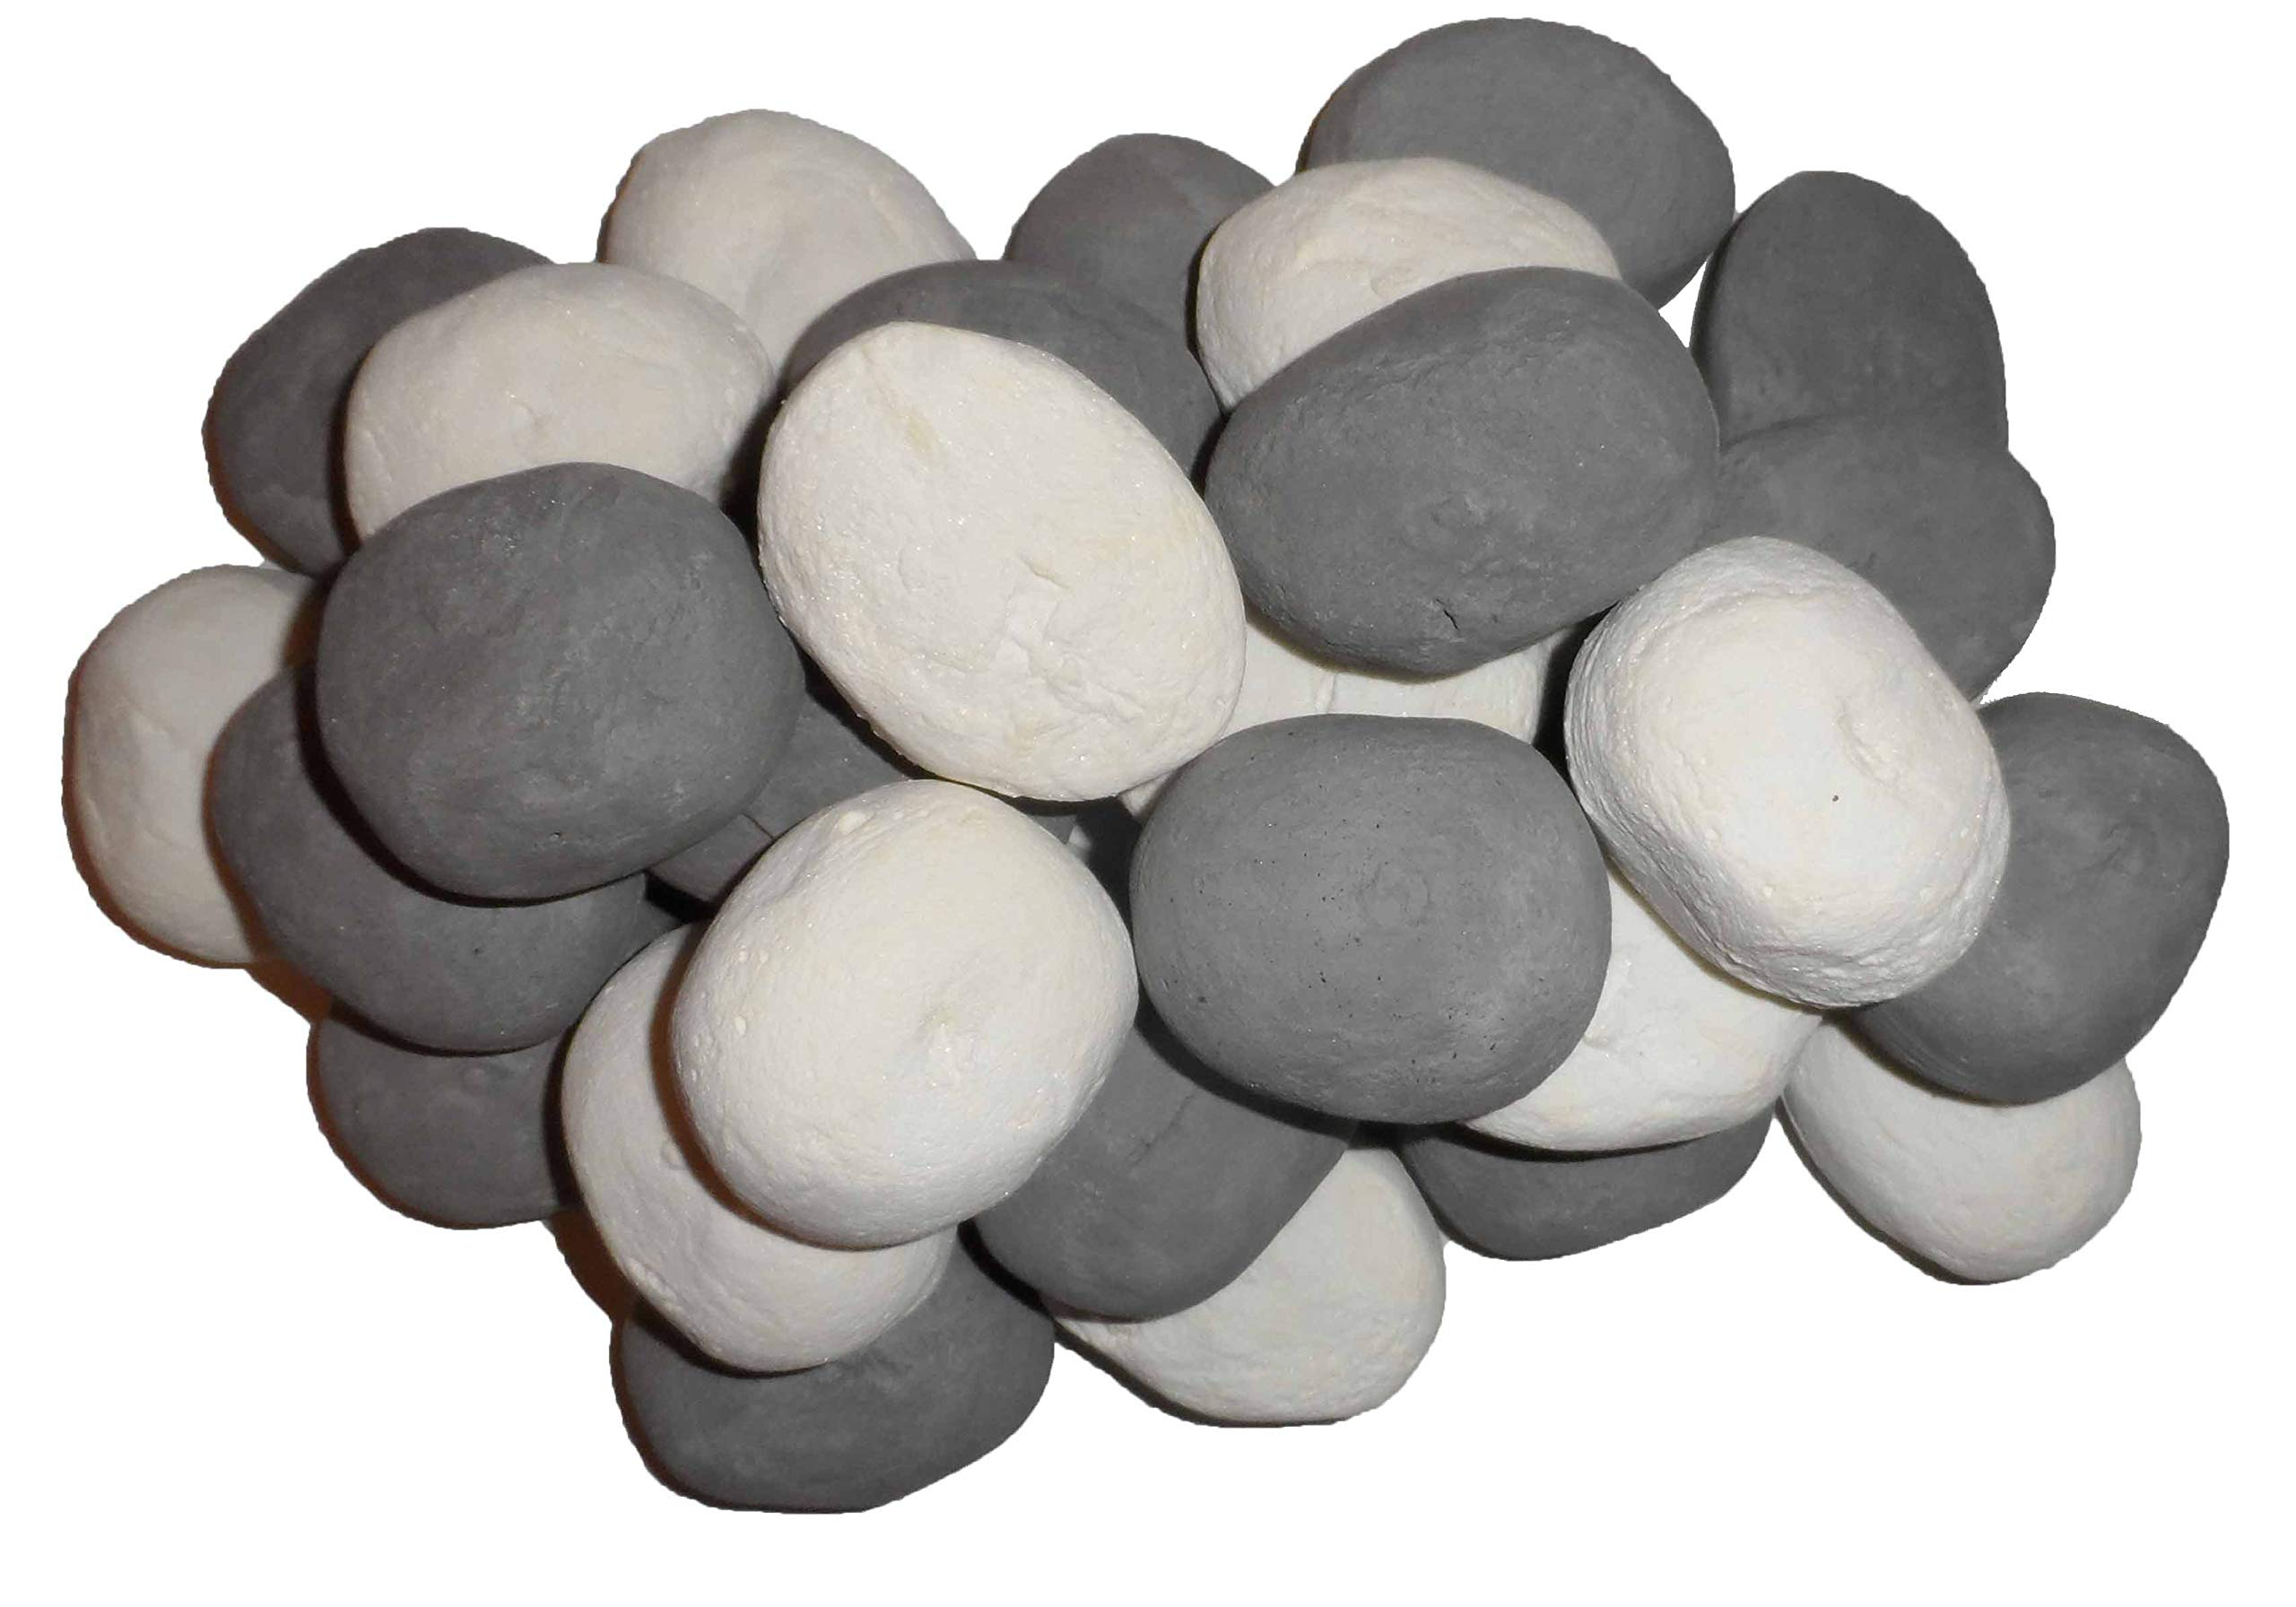 20 GAS COAL FIRE REPLACEMENT CERAMIC MIXED PEBBLES 60MM NEW SELLER OFFER